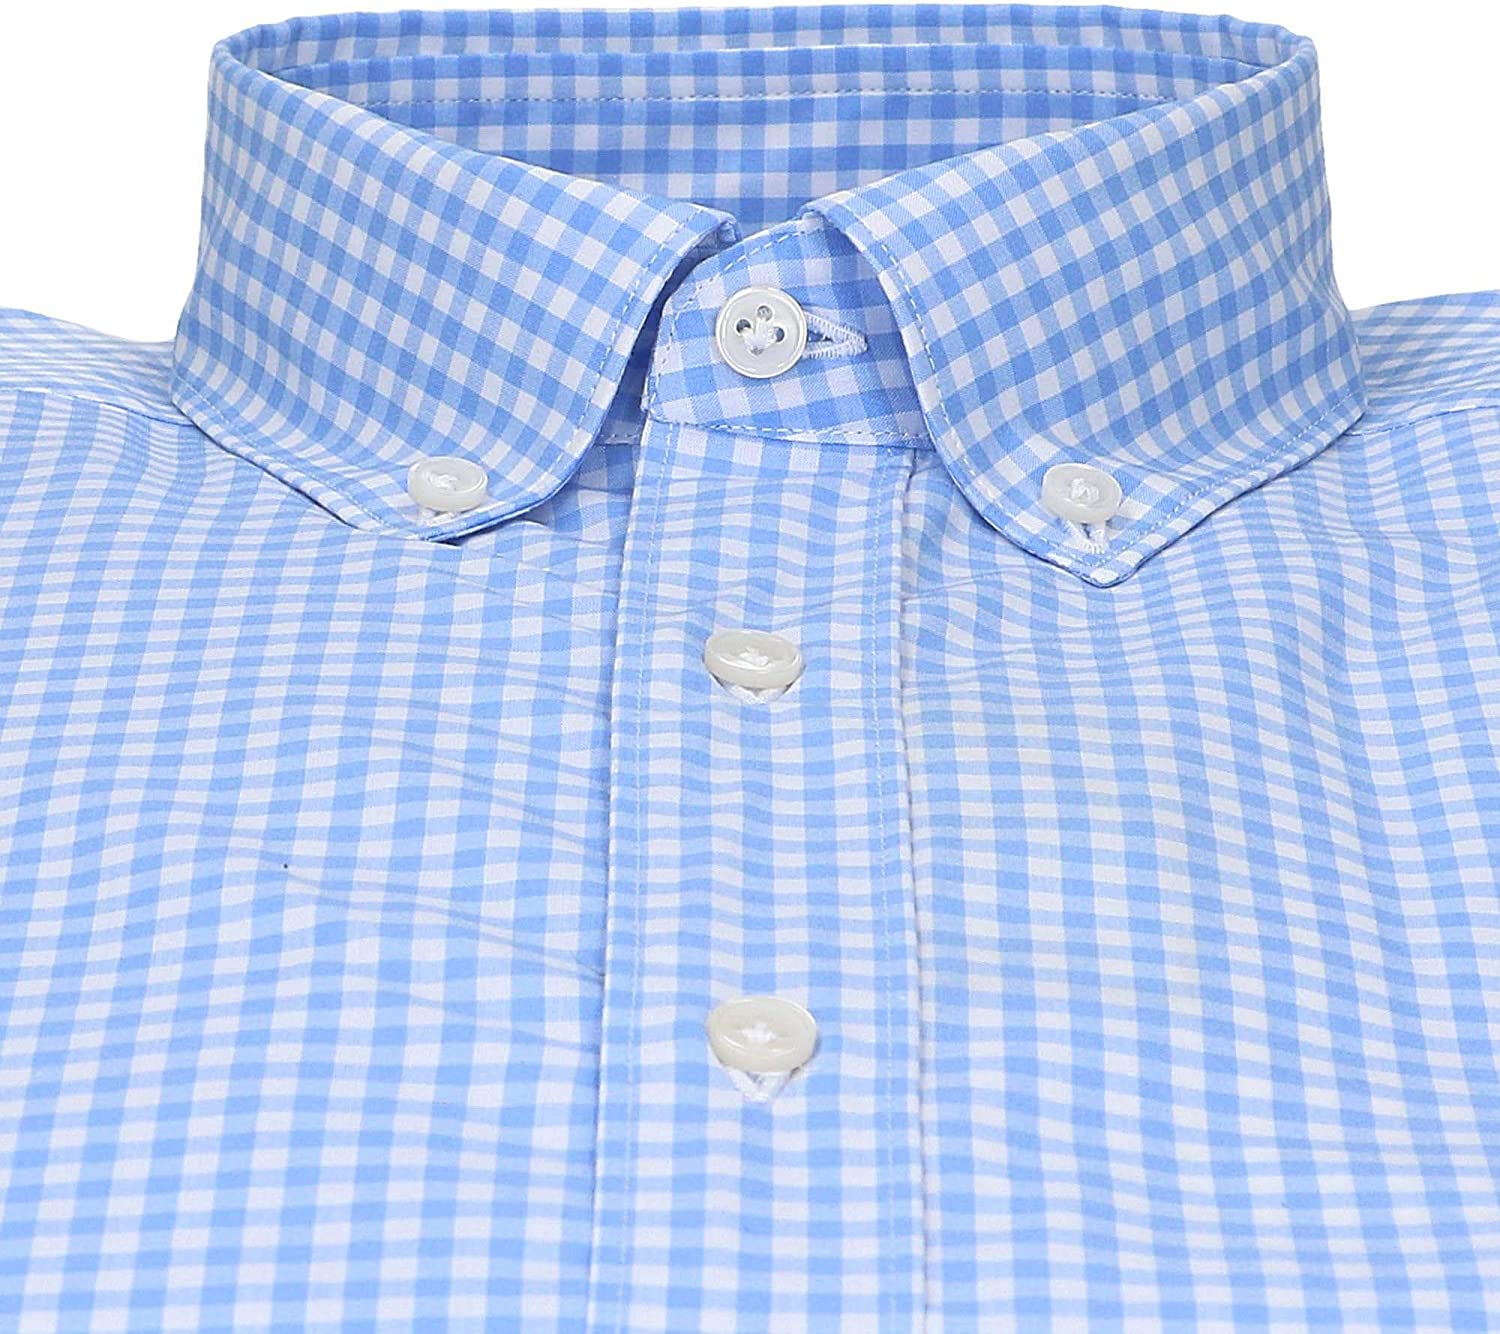 fay Luxury Fashion Mens Shirt Summer Turquoise